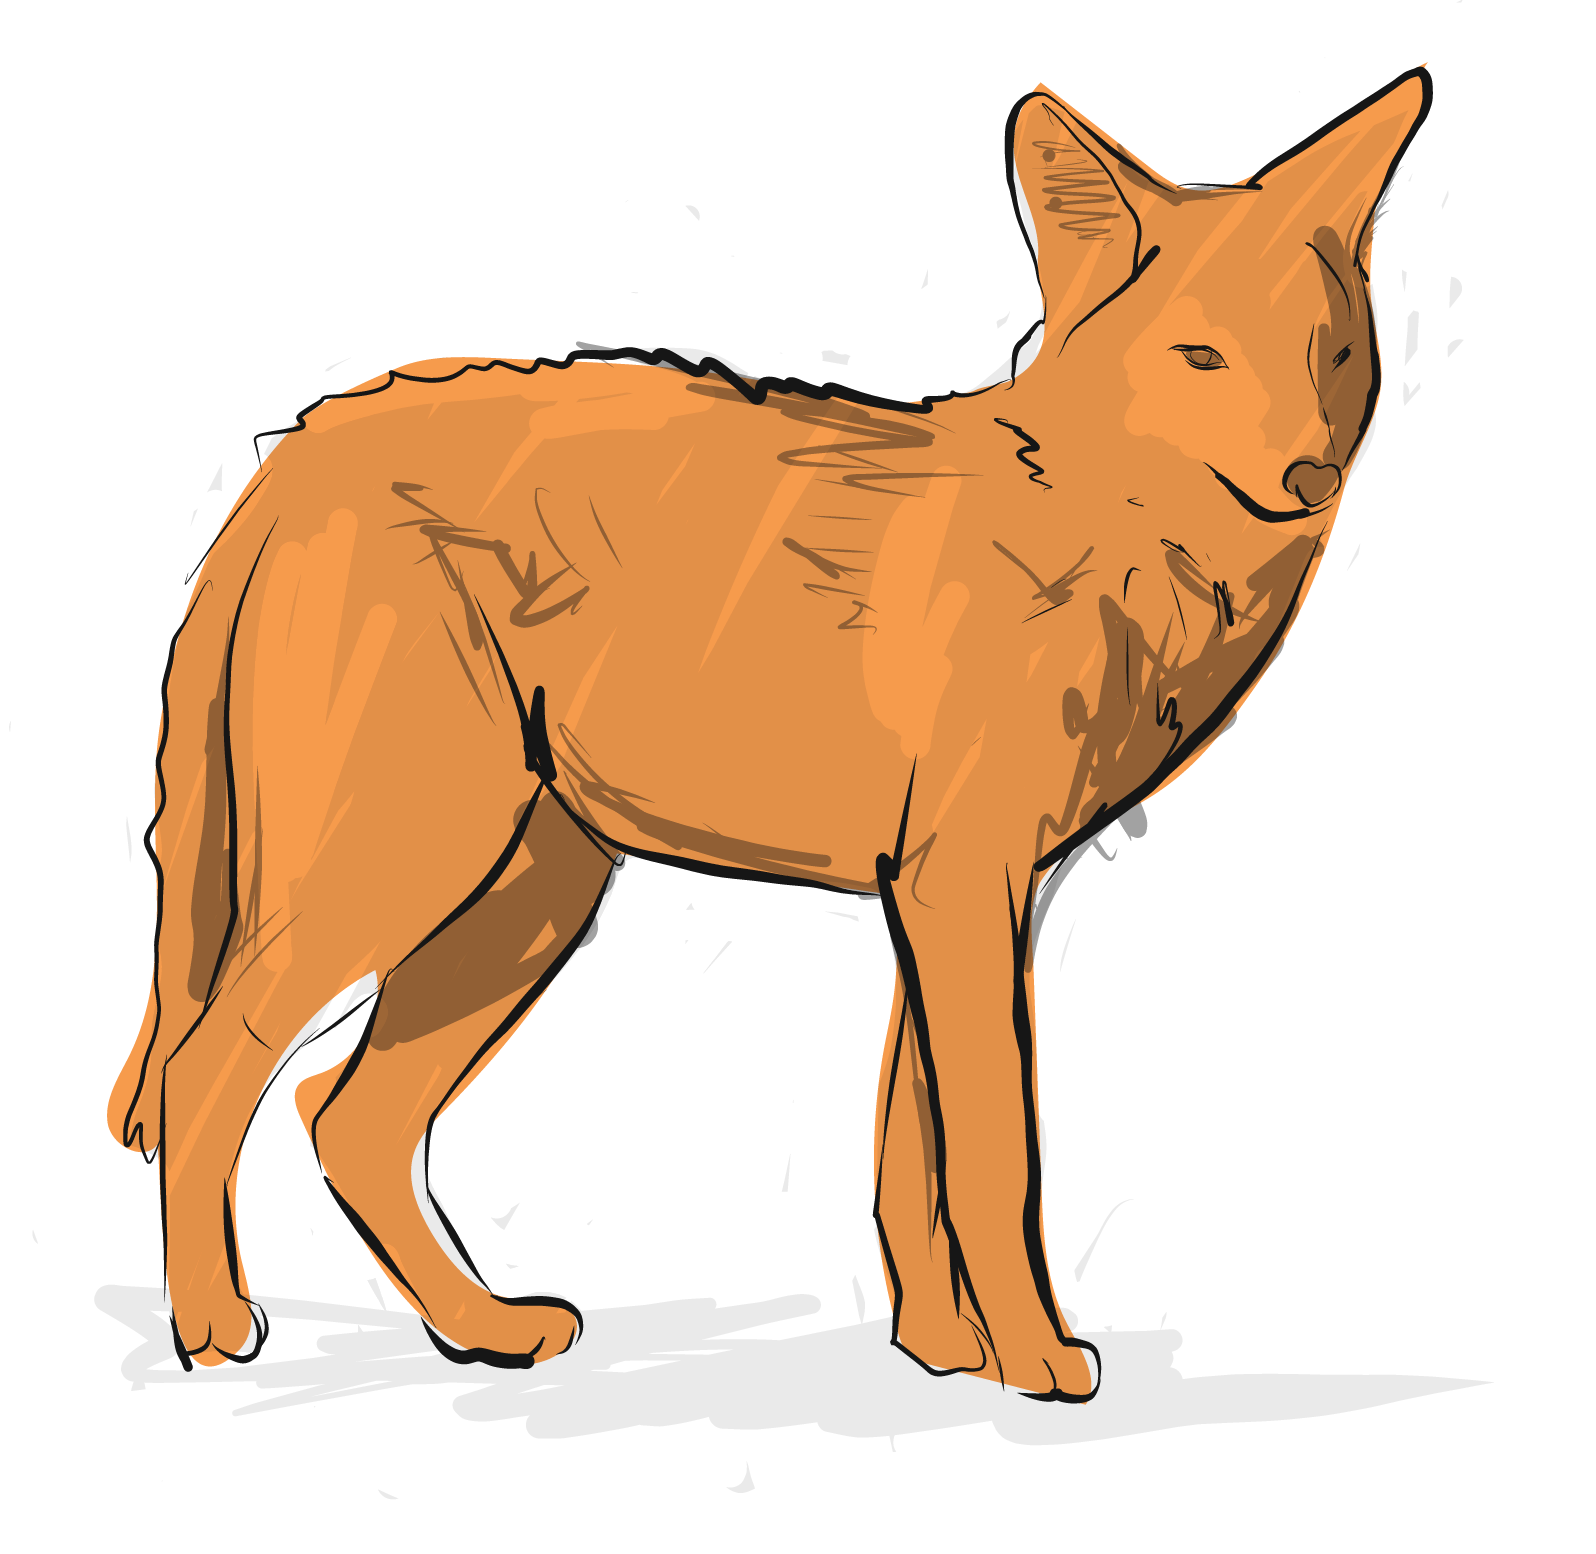 Coyote-01.png